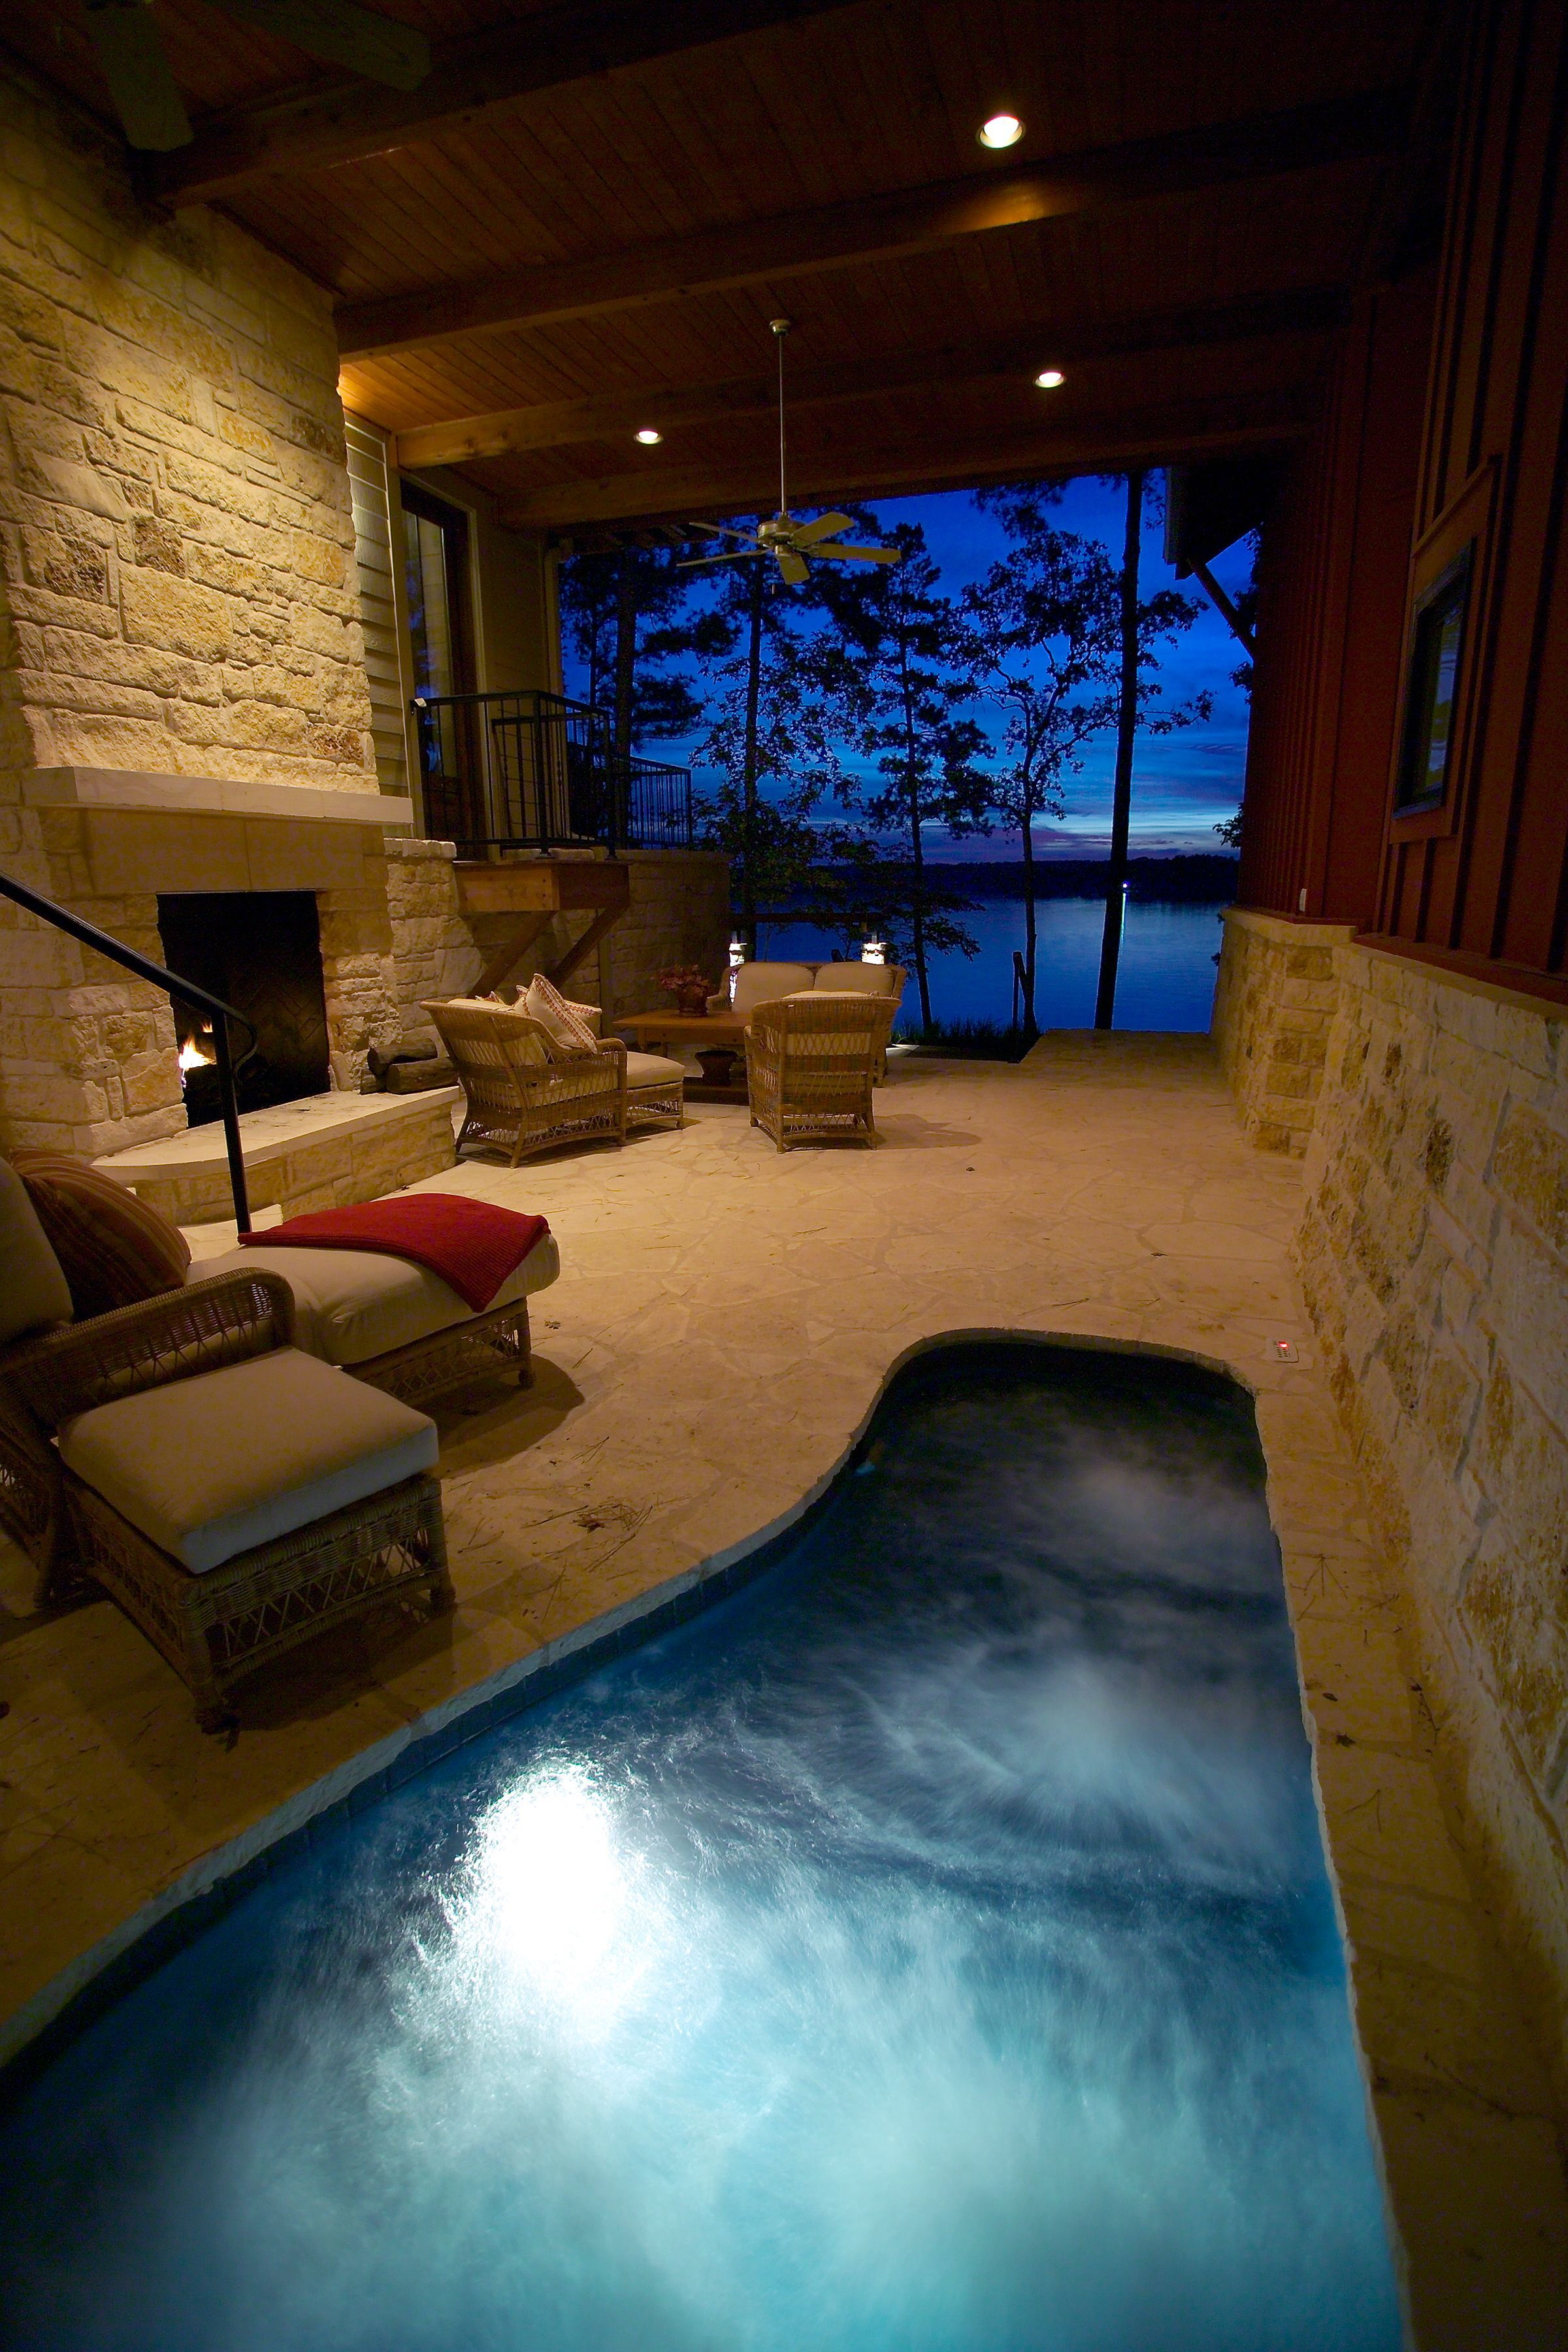 I Love Hot Tubs And I Will Have One In My Home One Day Inside And Out And I Love The Look Of This One Indoor Hot Tub Spa Bathroom Design